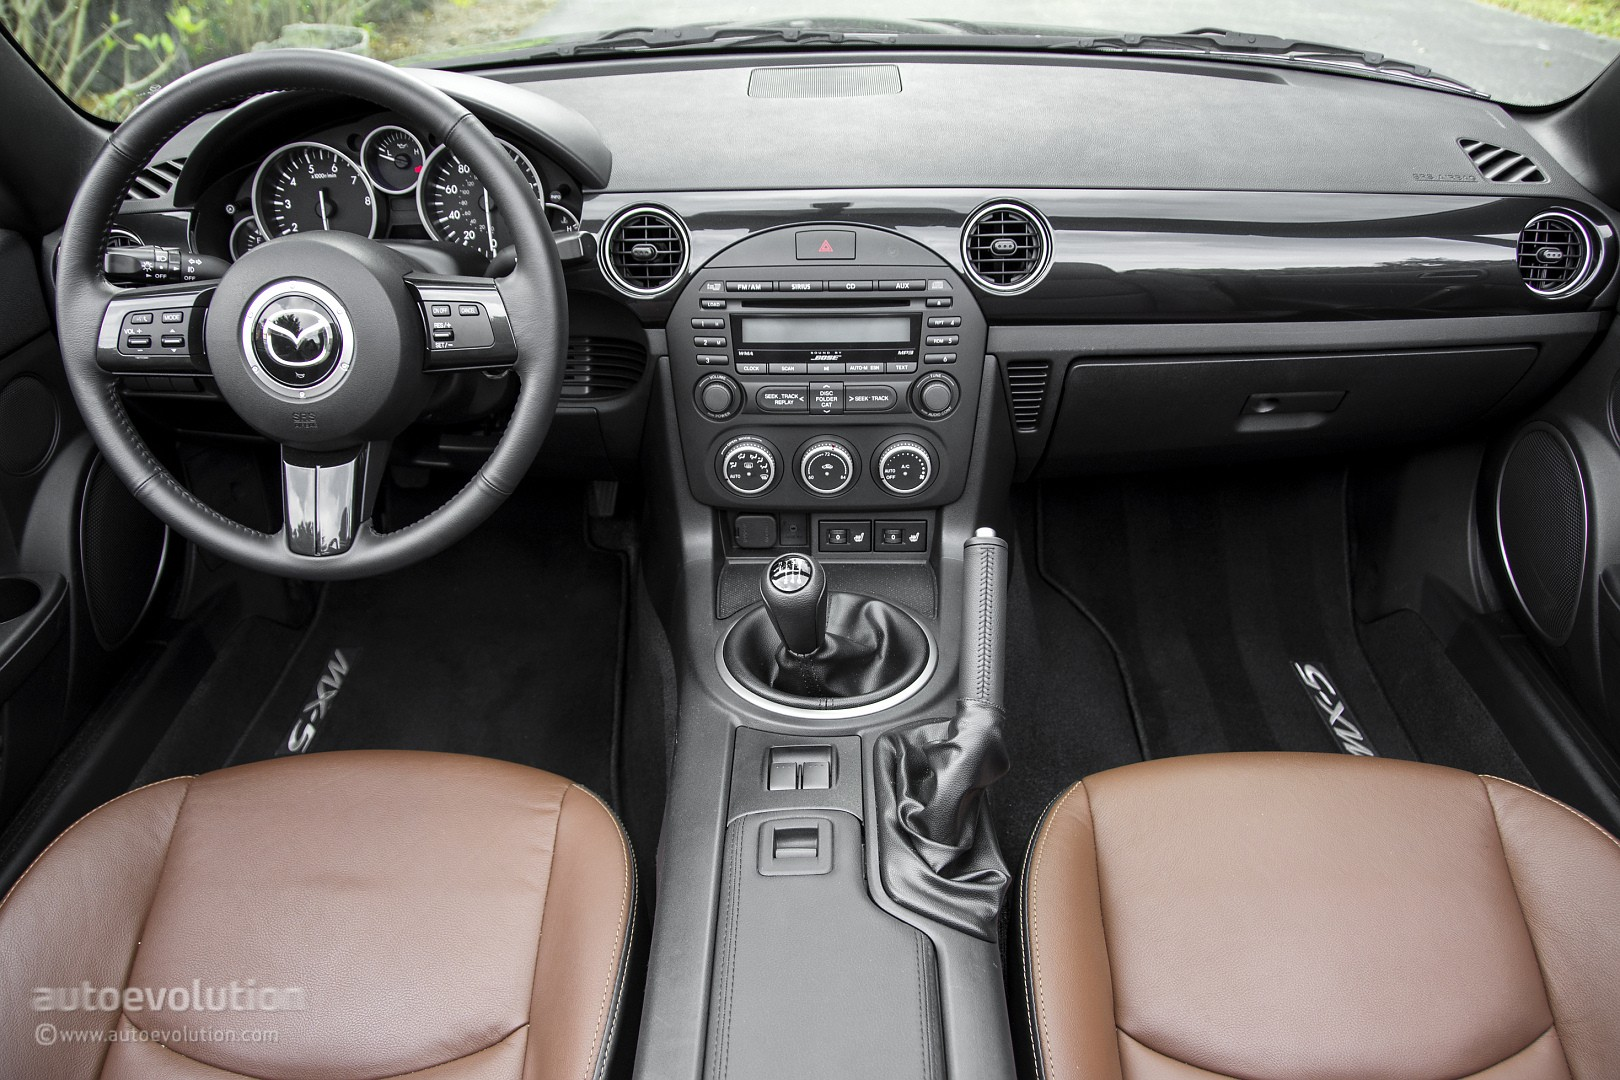 2015 Mazda MX-5 Miata Review - autoevolution